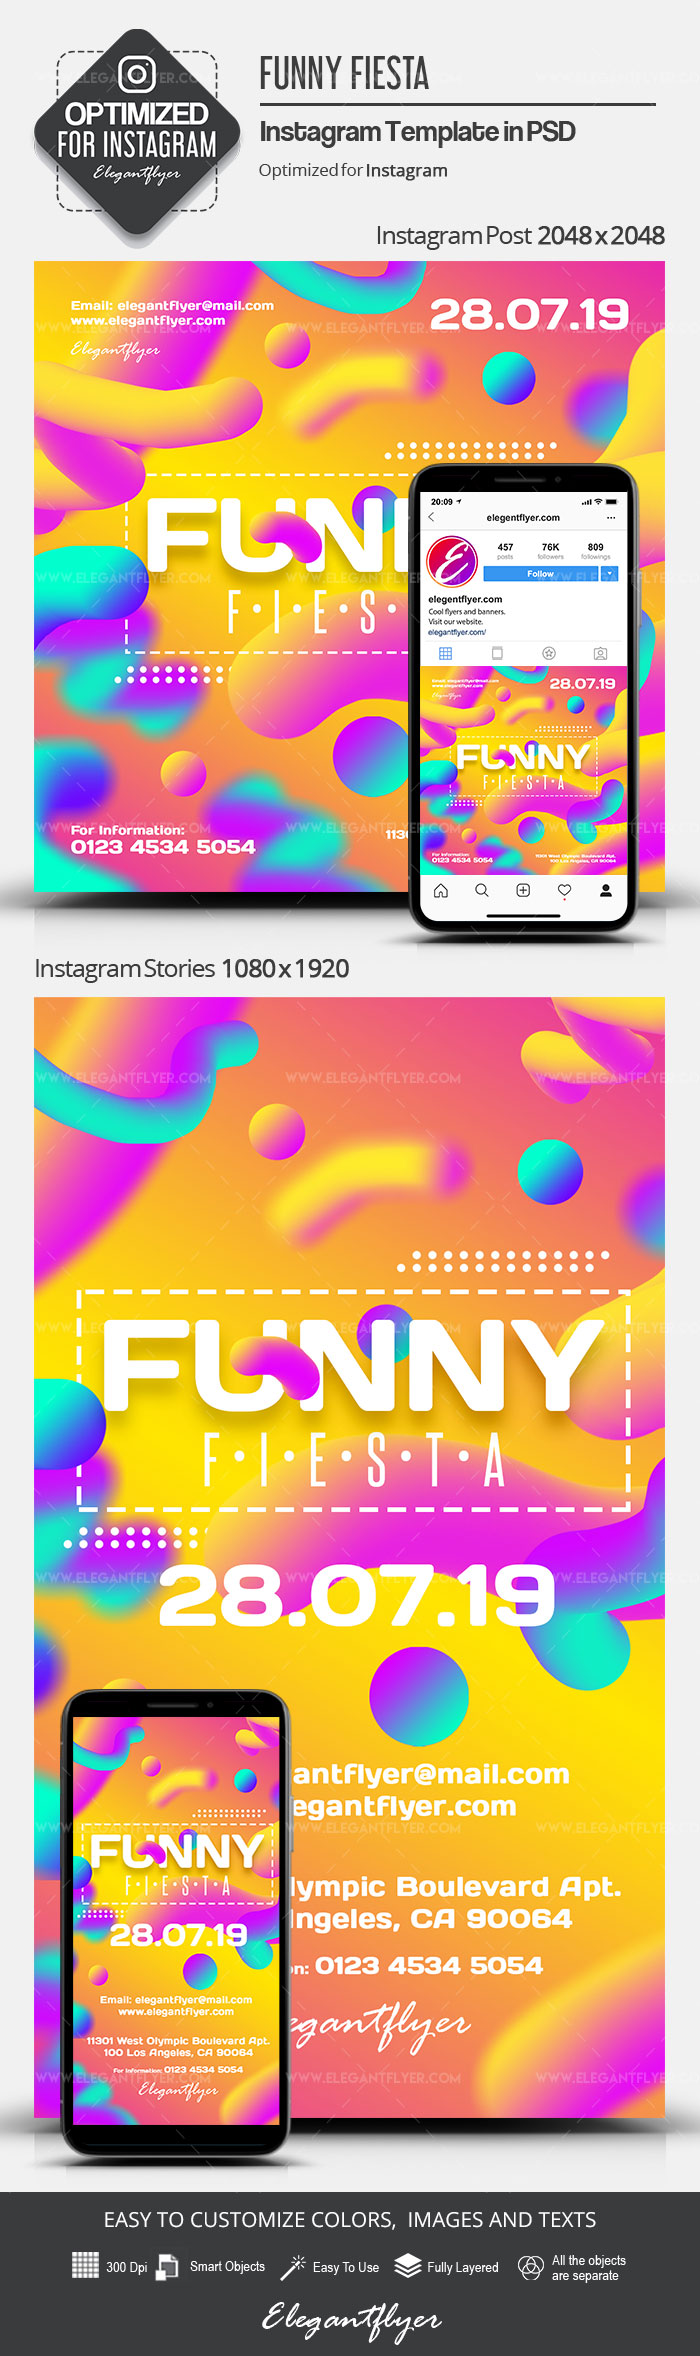 Funny Fiesta – Instagram Stories Template in PSD + Post Templates